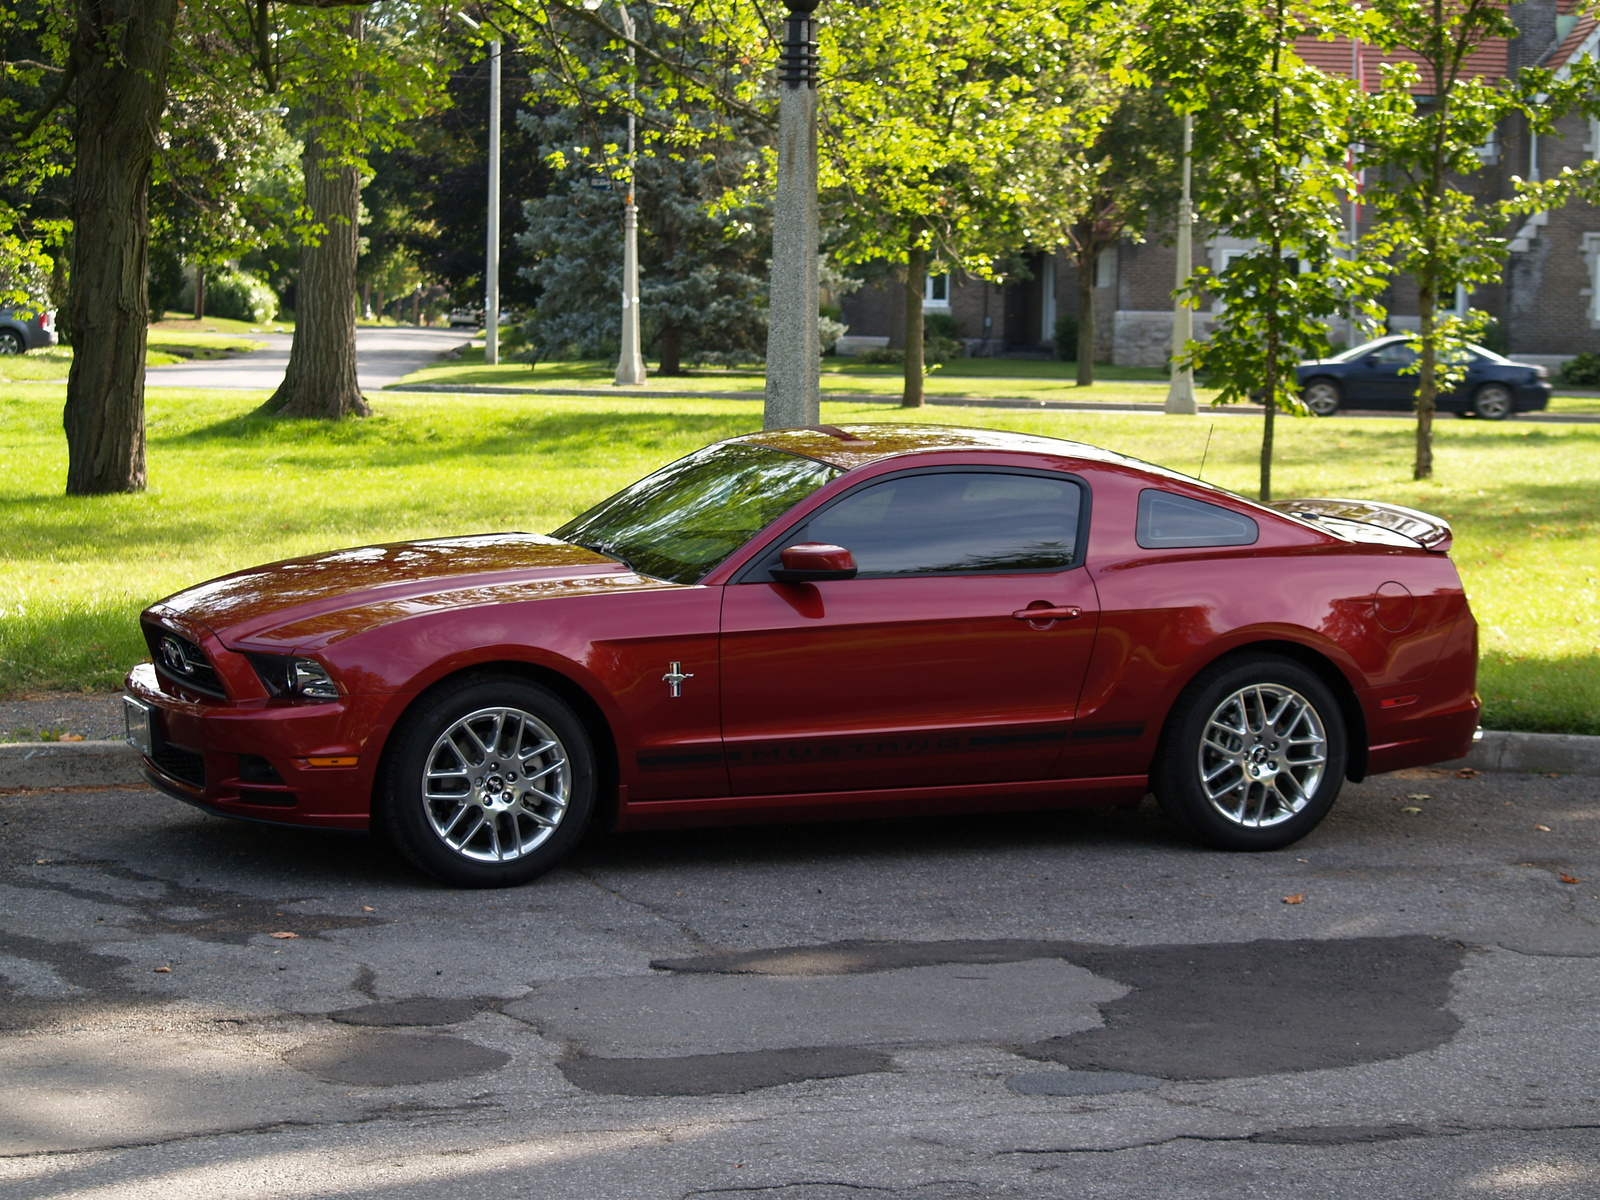 2014 ford mustang v6 premium coupe august 30 2013 2014 ford mustang v6 ...